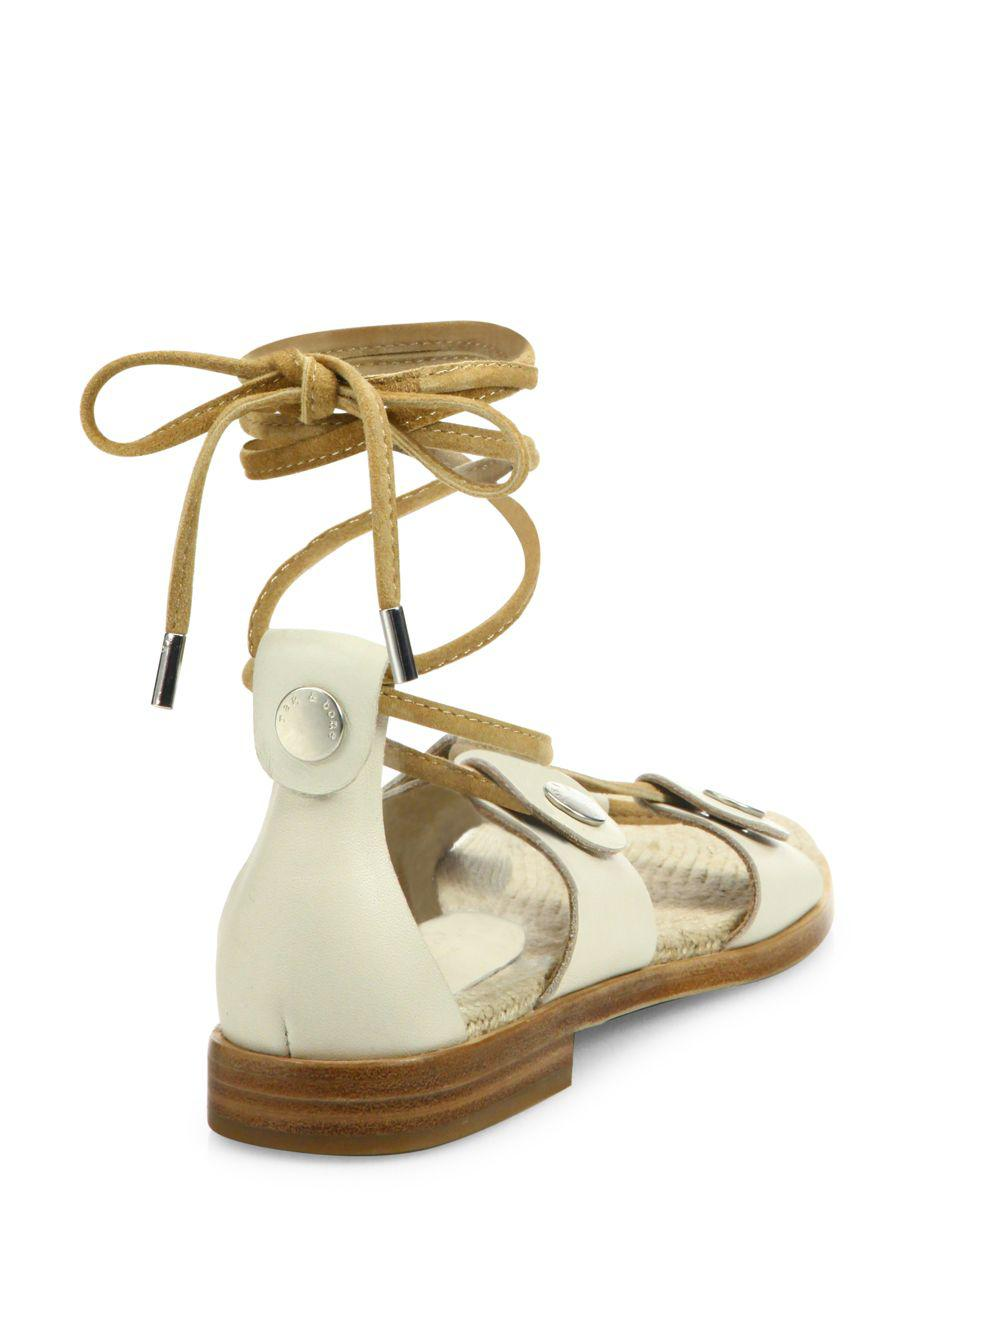 903b239f1af0 Rag   Bone City Leather Lace-up Sandals in White - Save 62% - Lyst